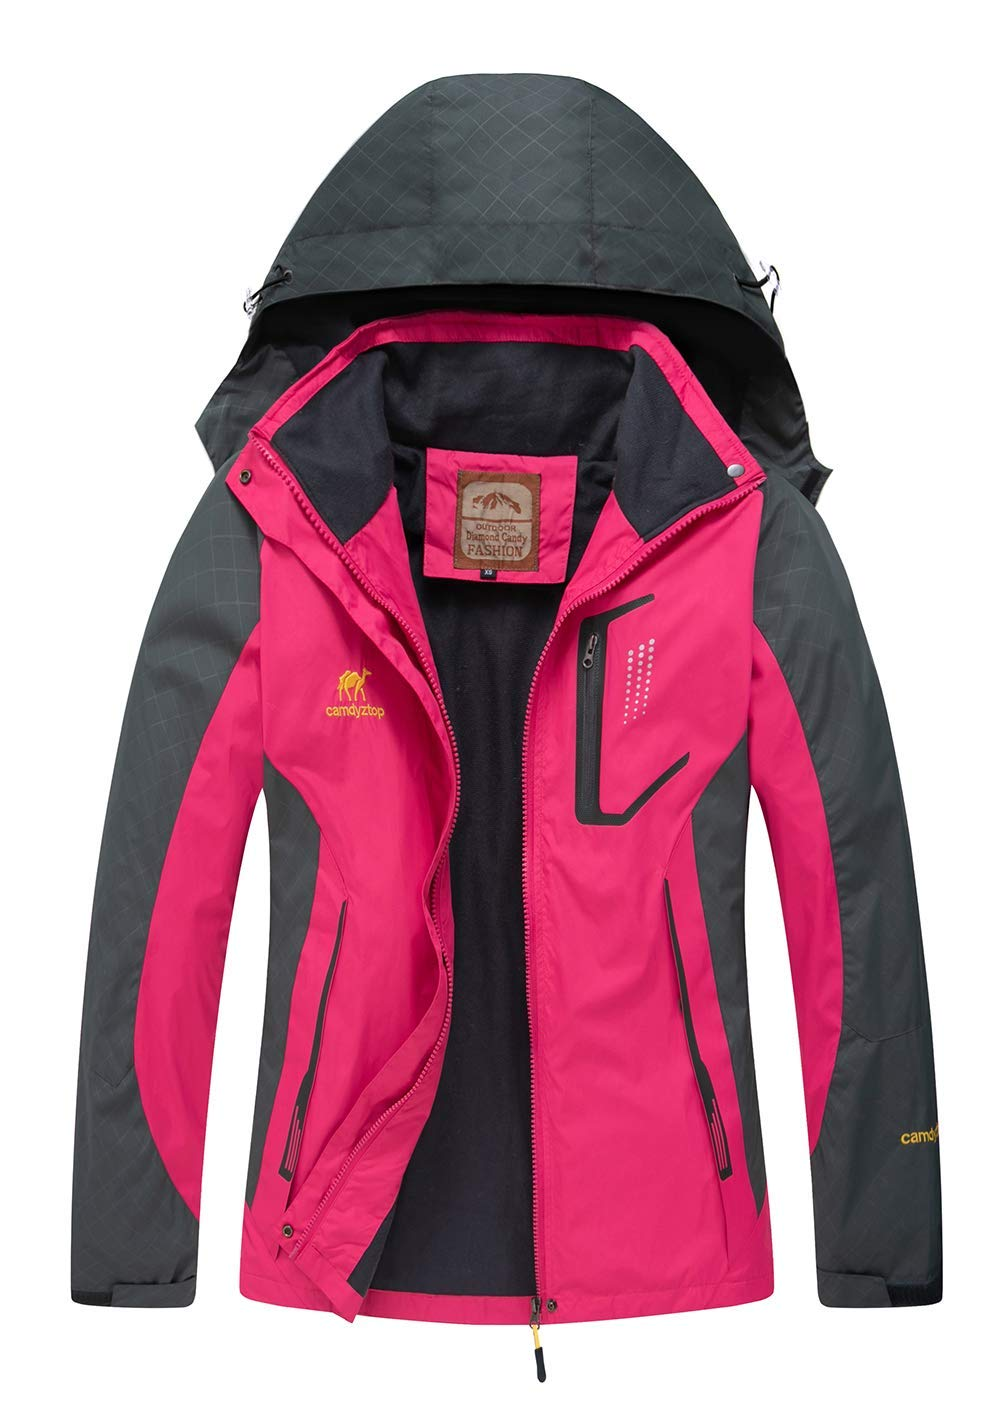 gifst for mom who likes the outdoors, softshell hiking waterproof coat